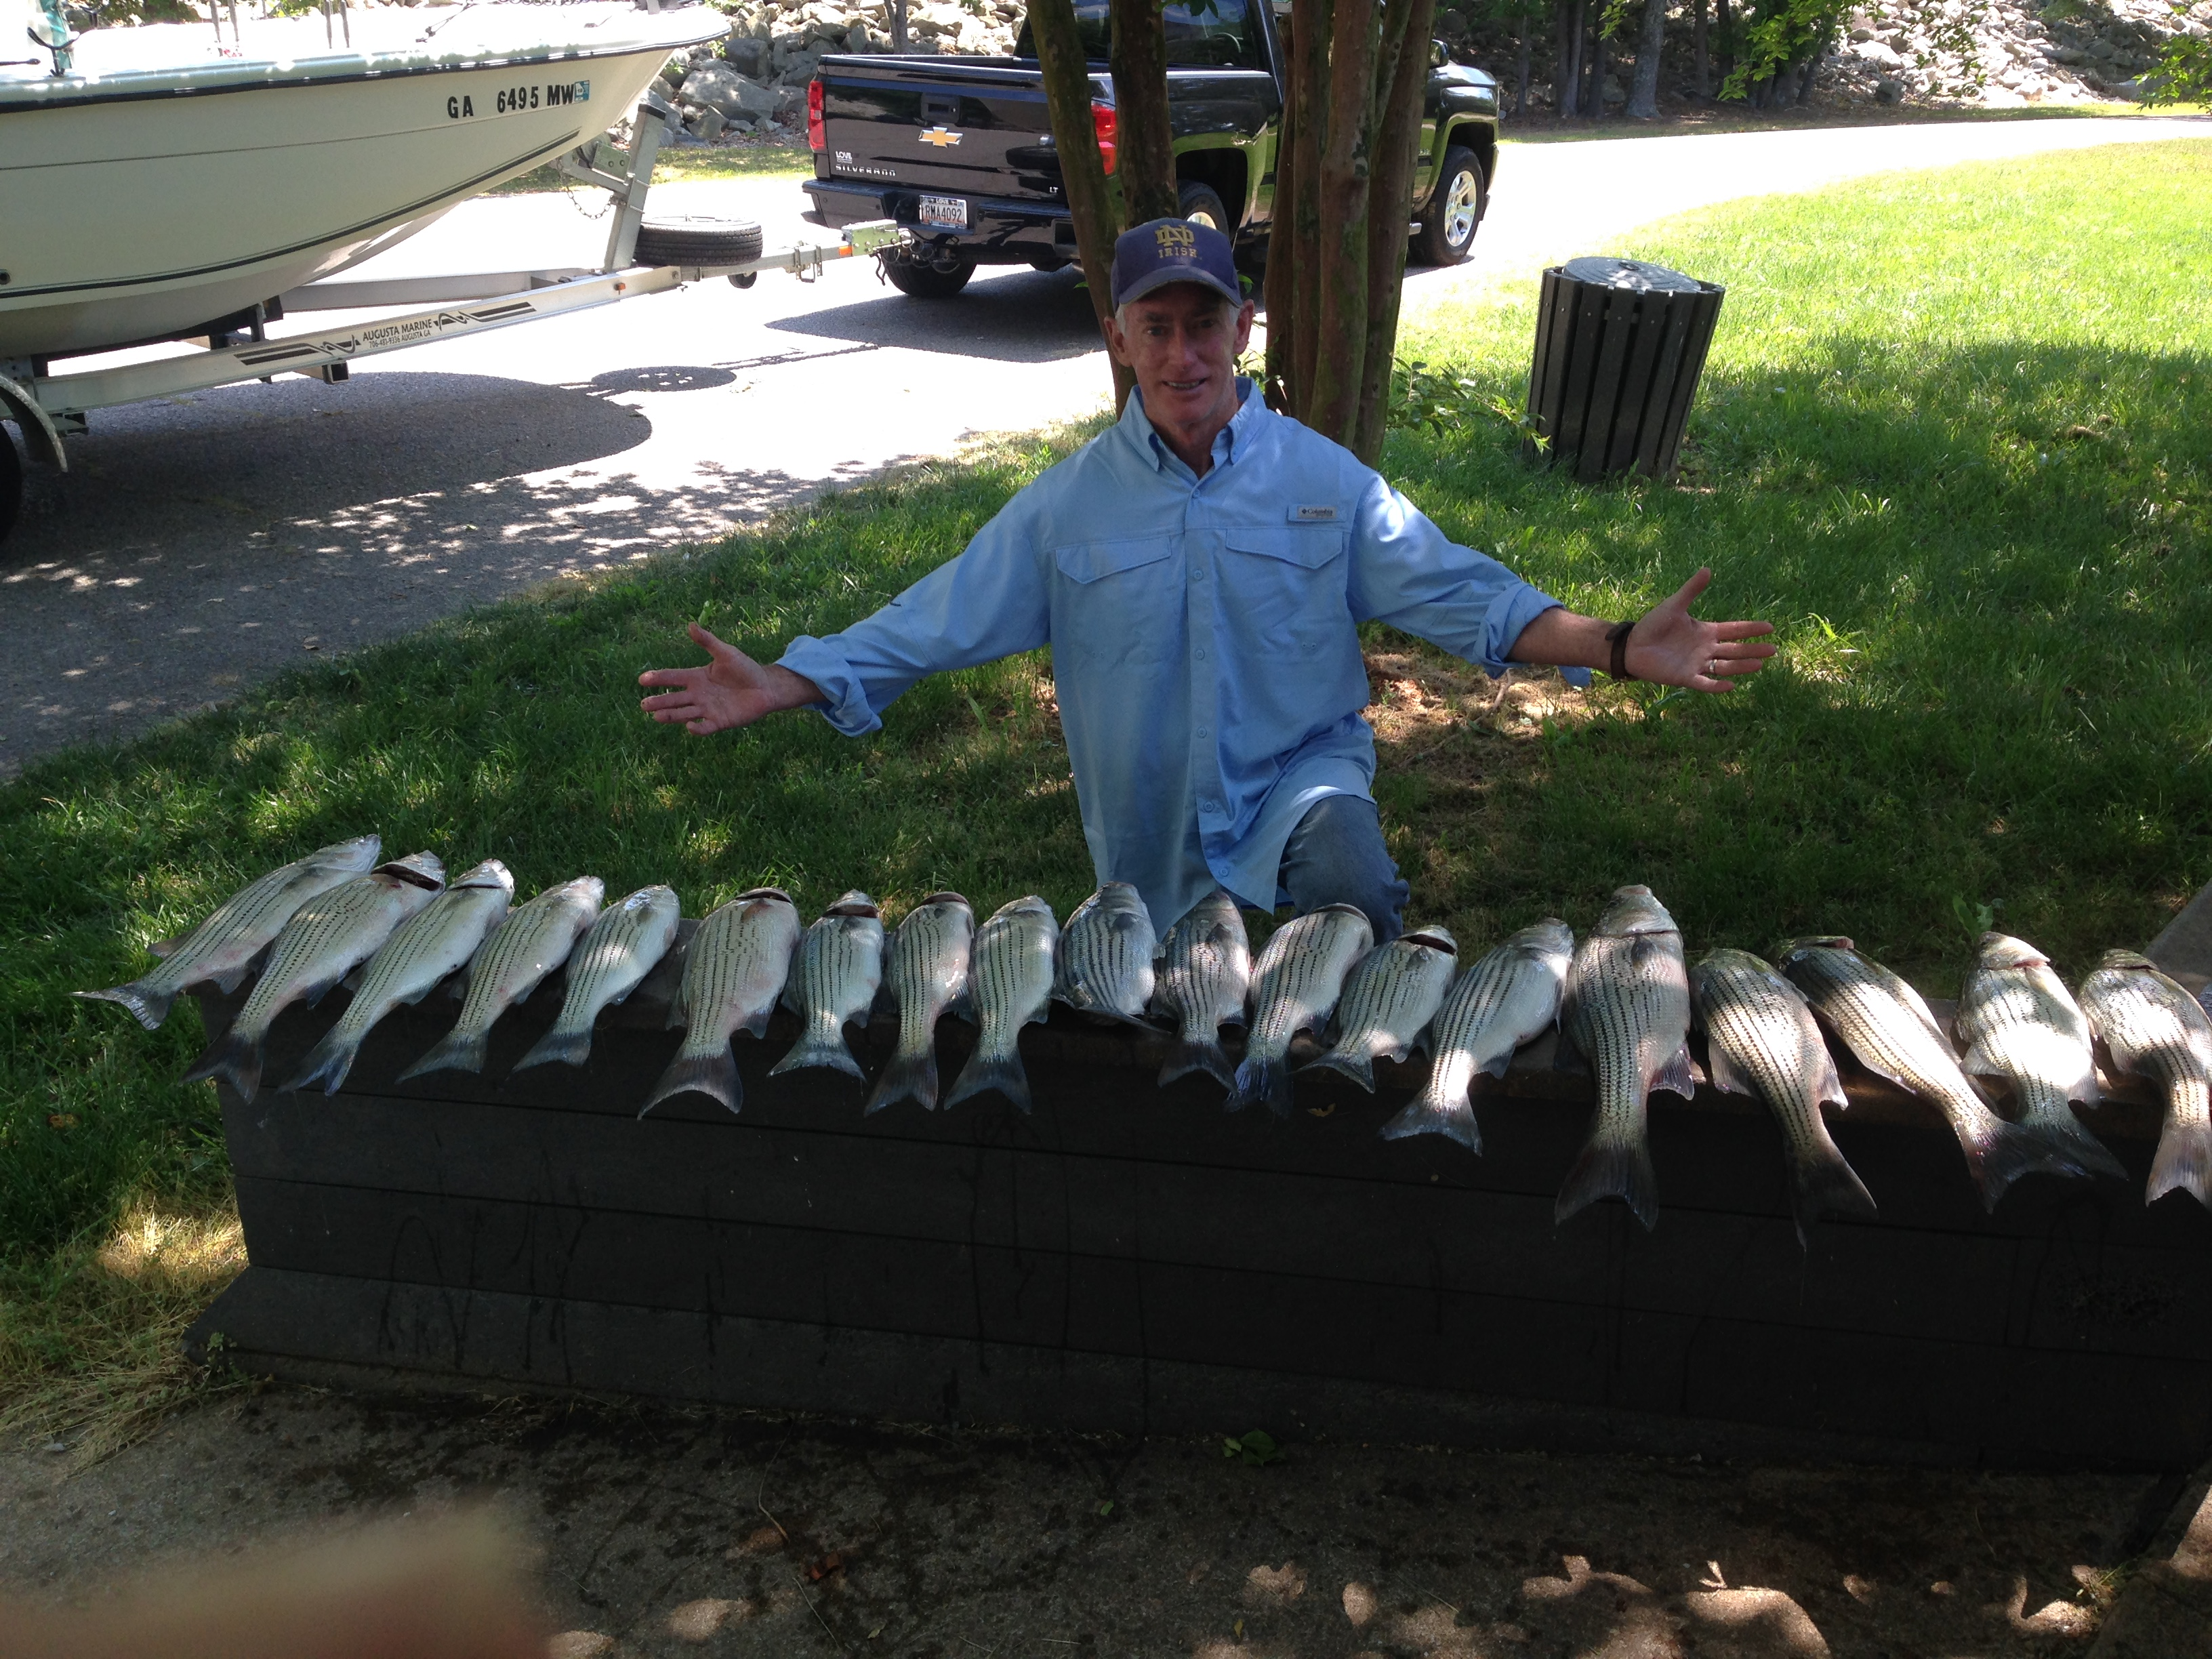 May 8, 2018,Joe Keeps with his and Ray Dowdy nice catch.